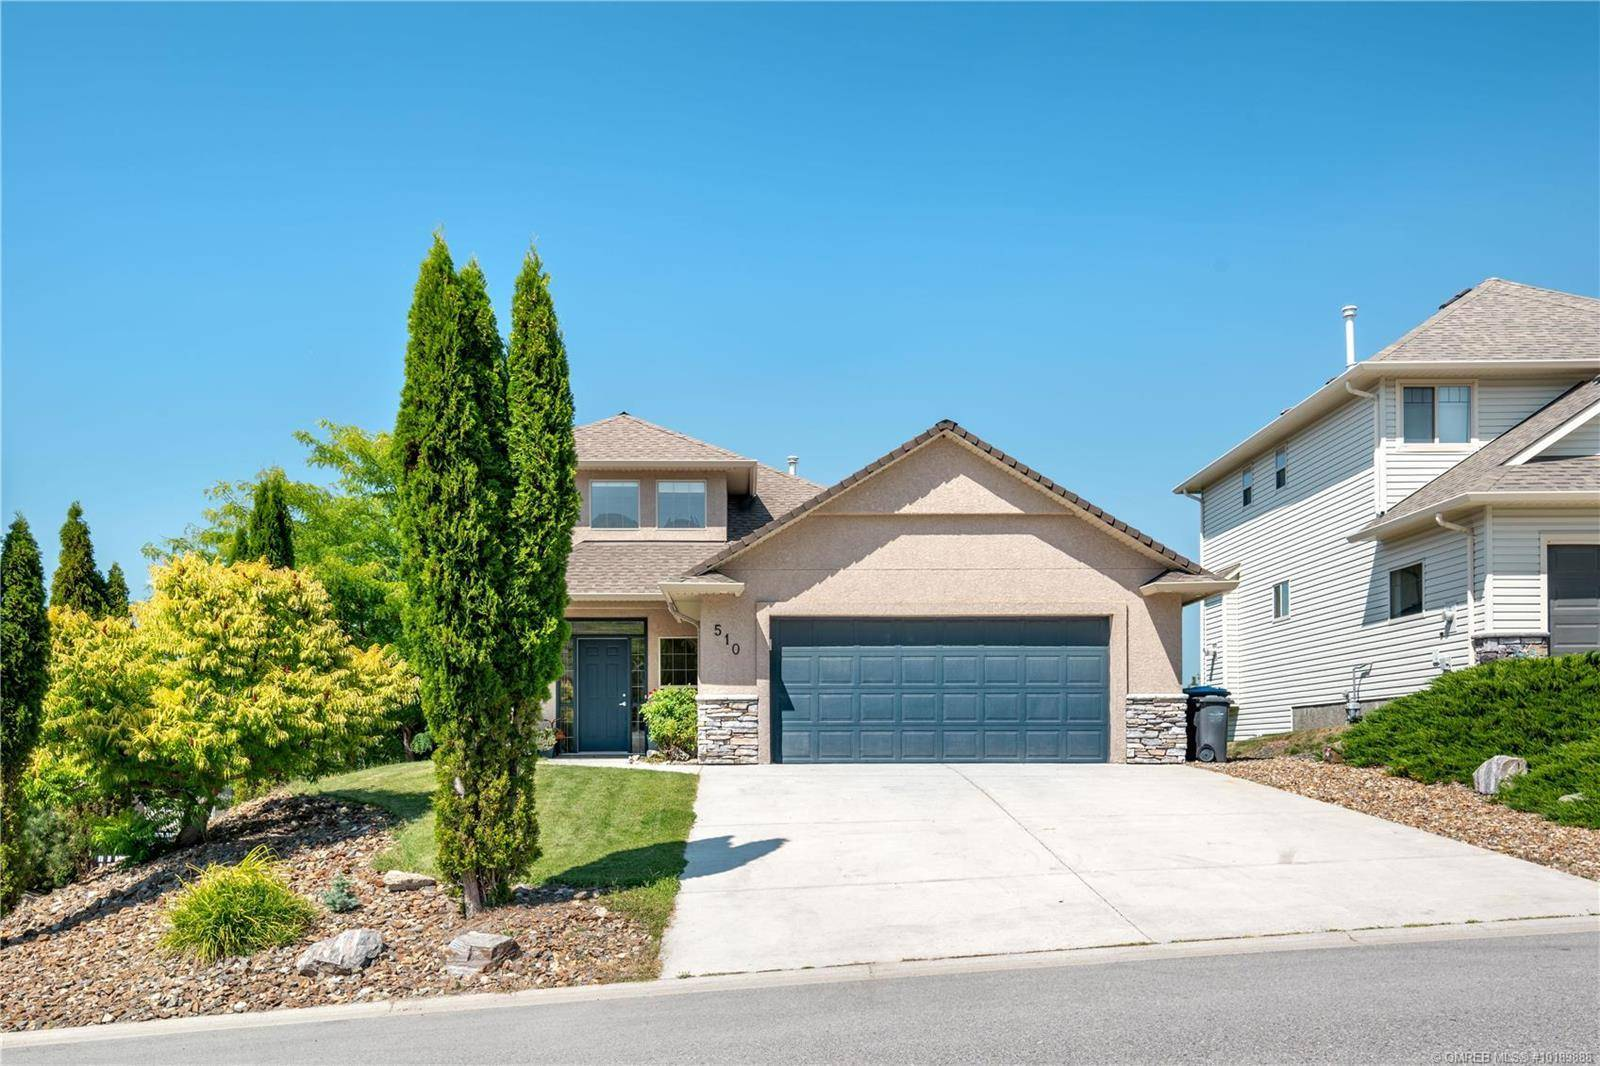 House for sale at 510 South Crest Dr Kelowna British Columbia - MLS: 10189888